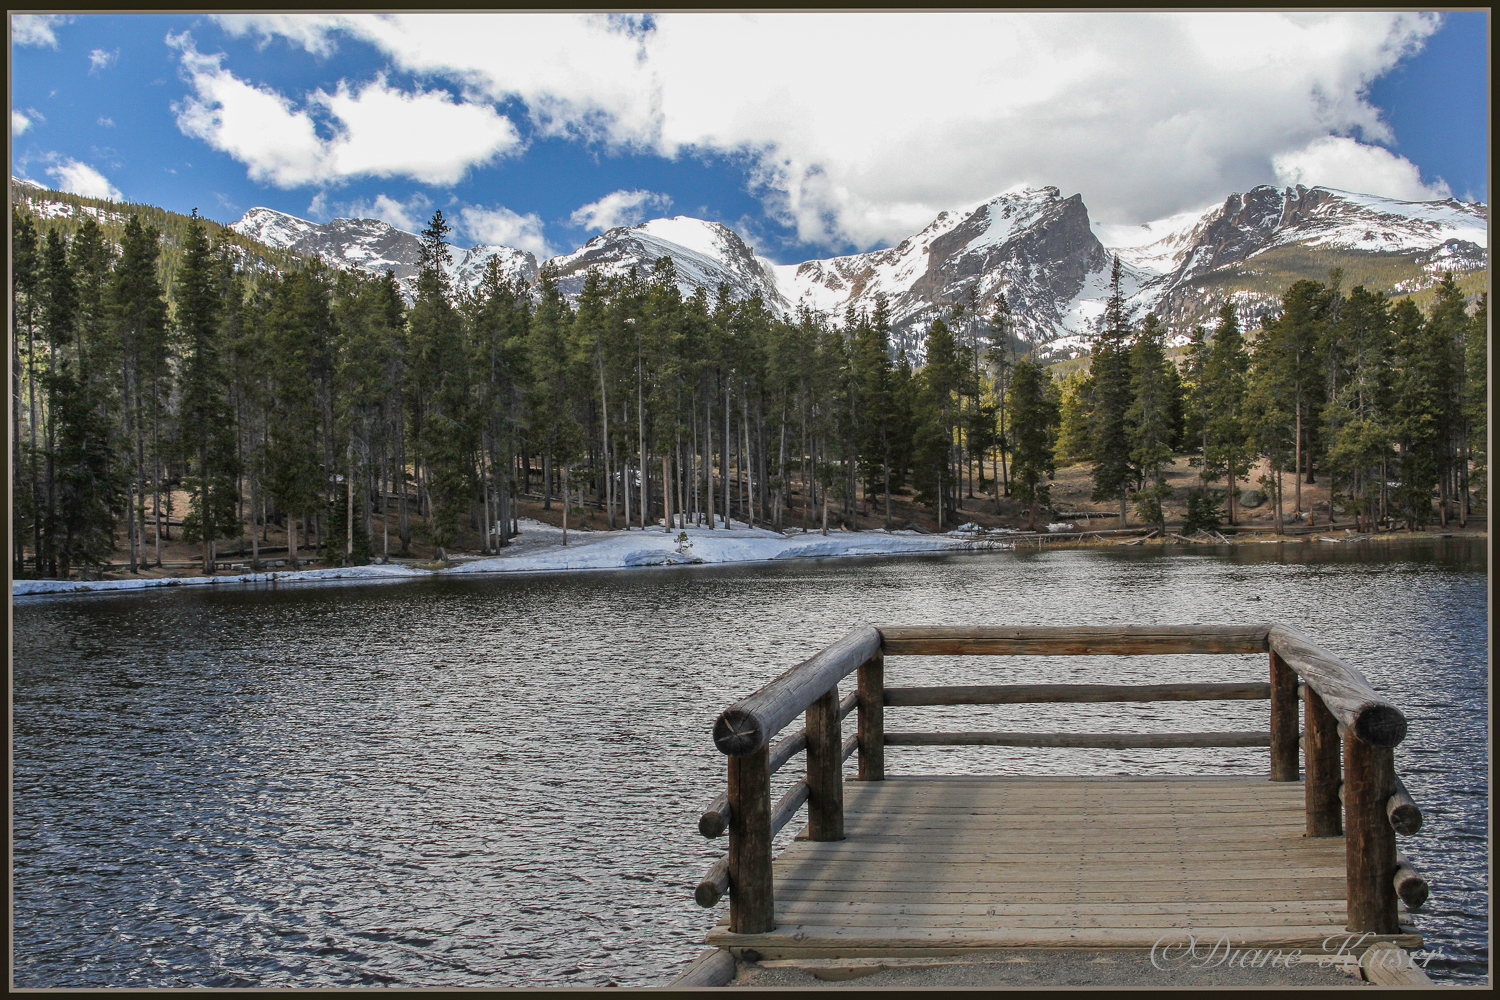 We hiked the perimeter of Sprague Lake (1/2 mile cold and windy).  Diane got the two best iconic shots.